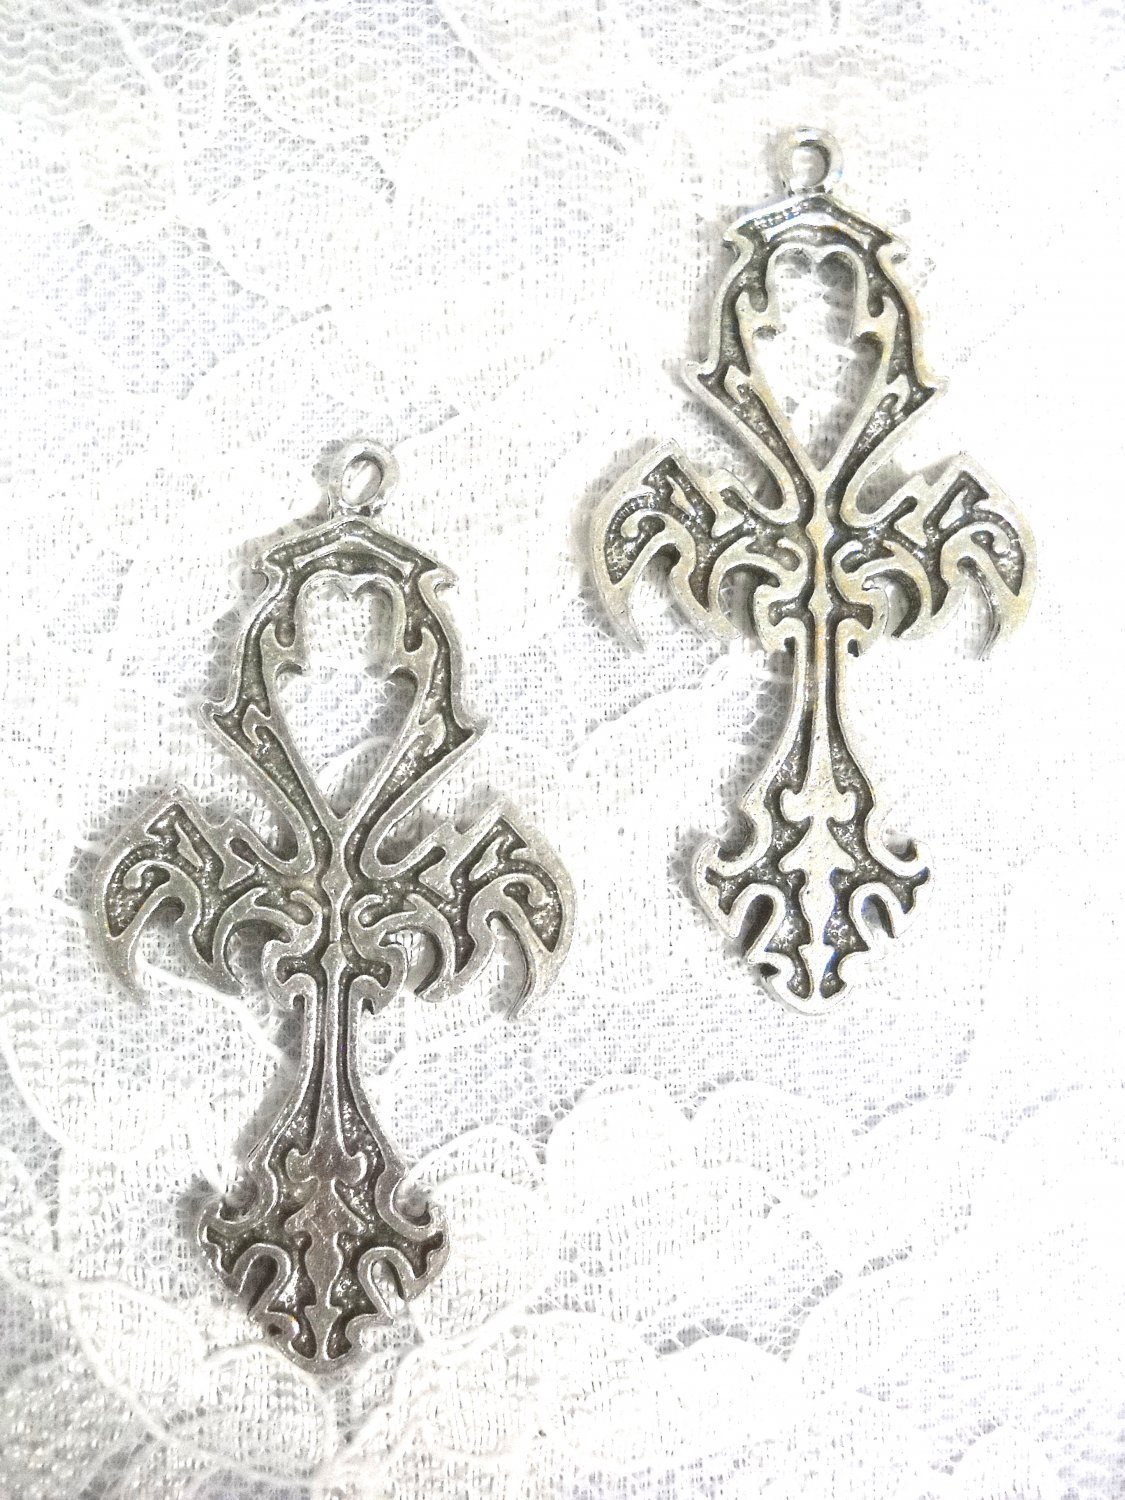 NEW DESIGN ETERNAL LIFE SYMBOL ANHK CROSS LARGE FULL PENDANT EARRINGS ANKH JEWELRY